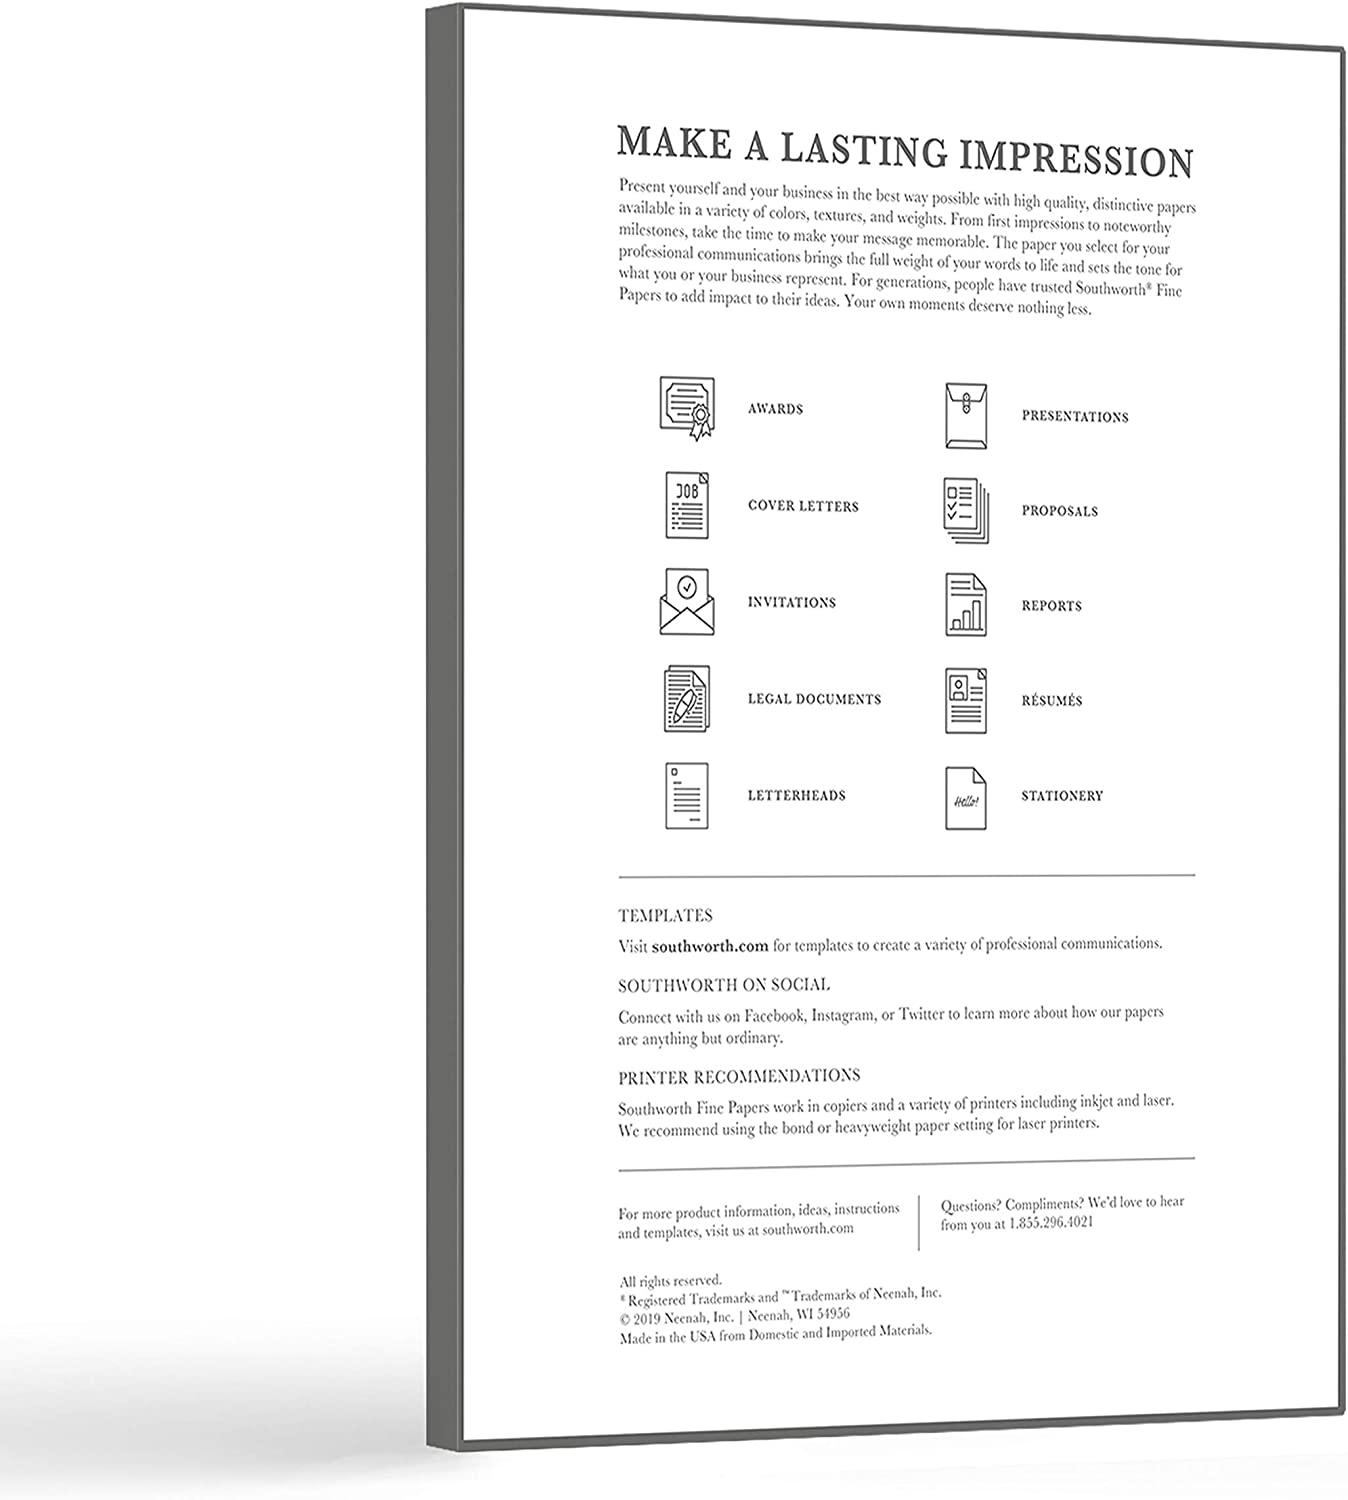 Southworth private stock resume paper esl ghostwriter sites for masters